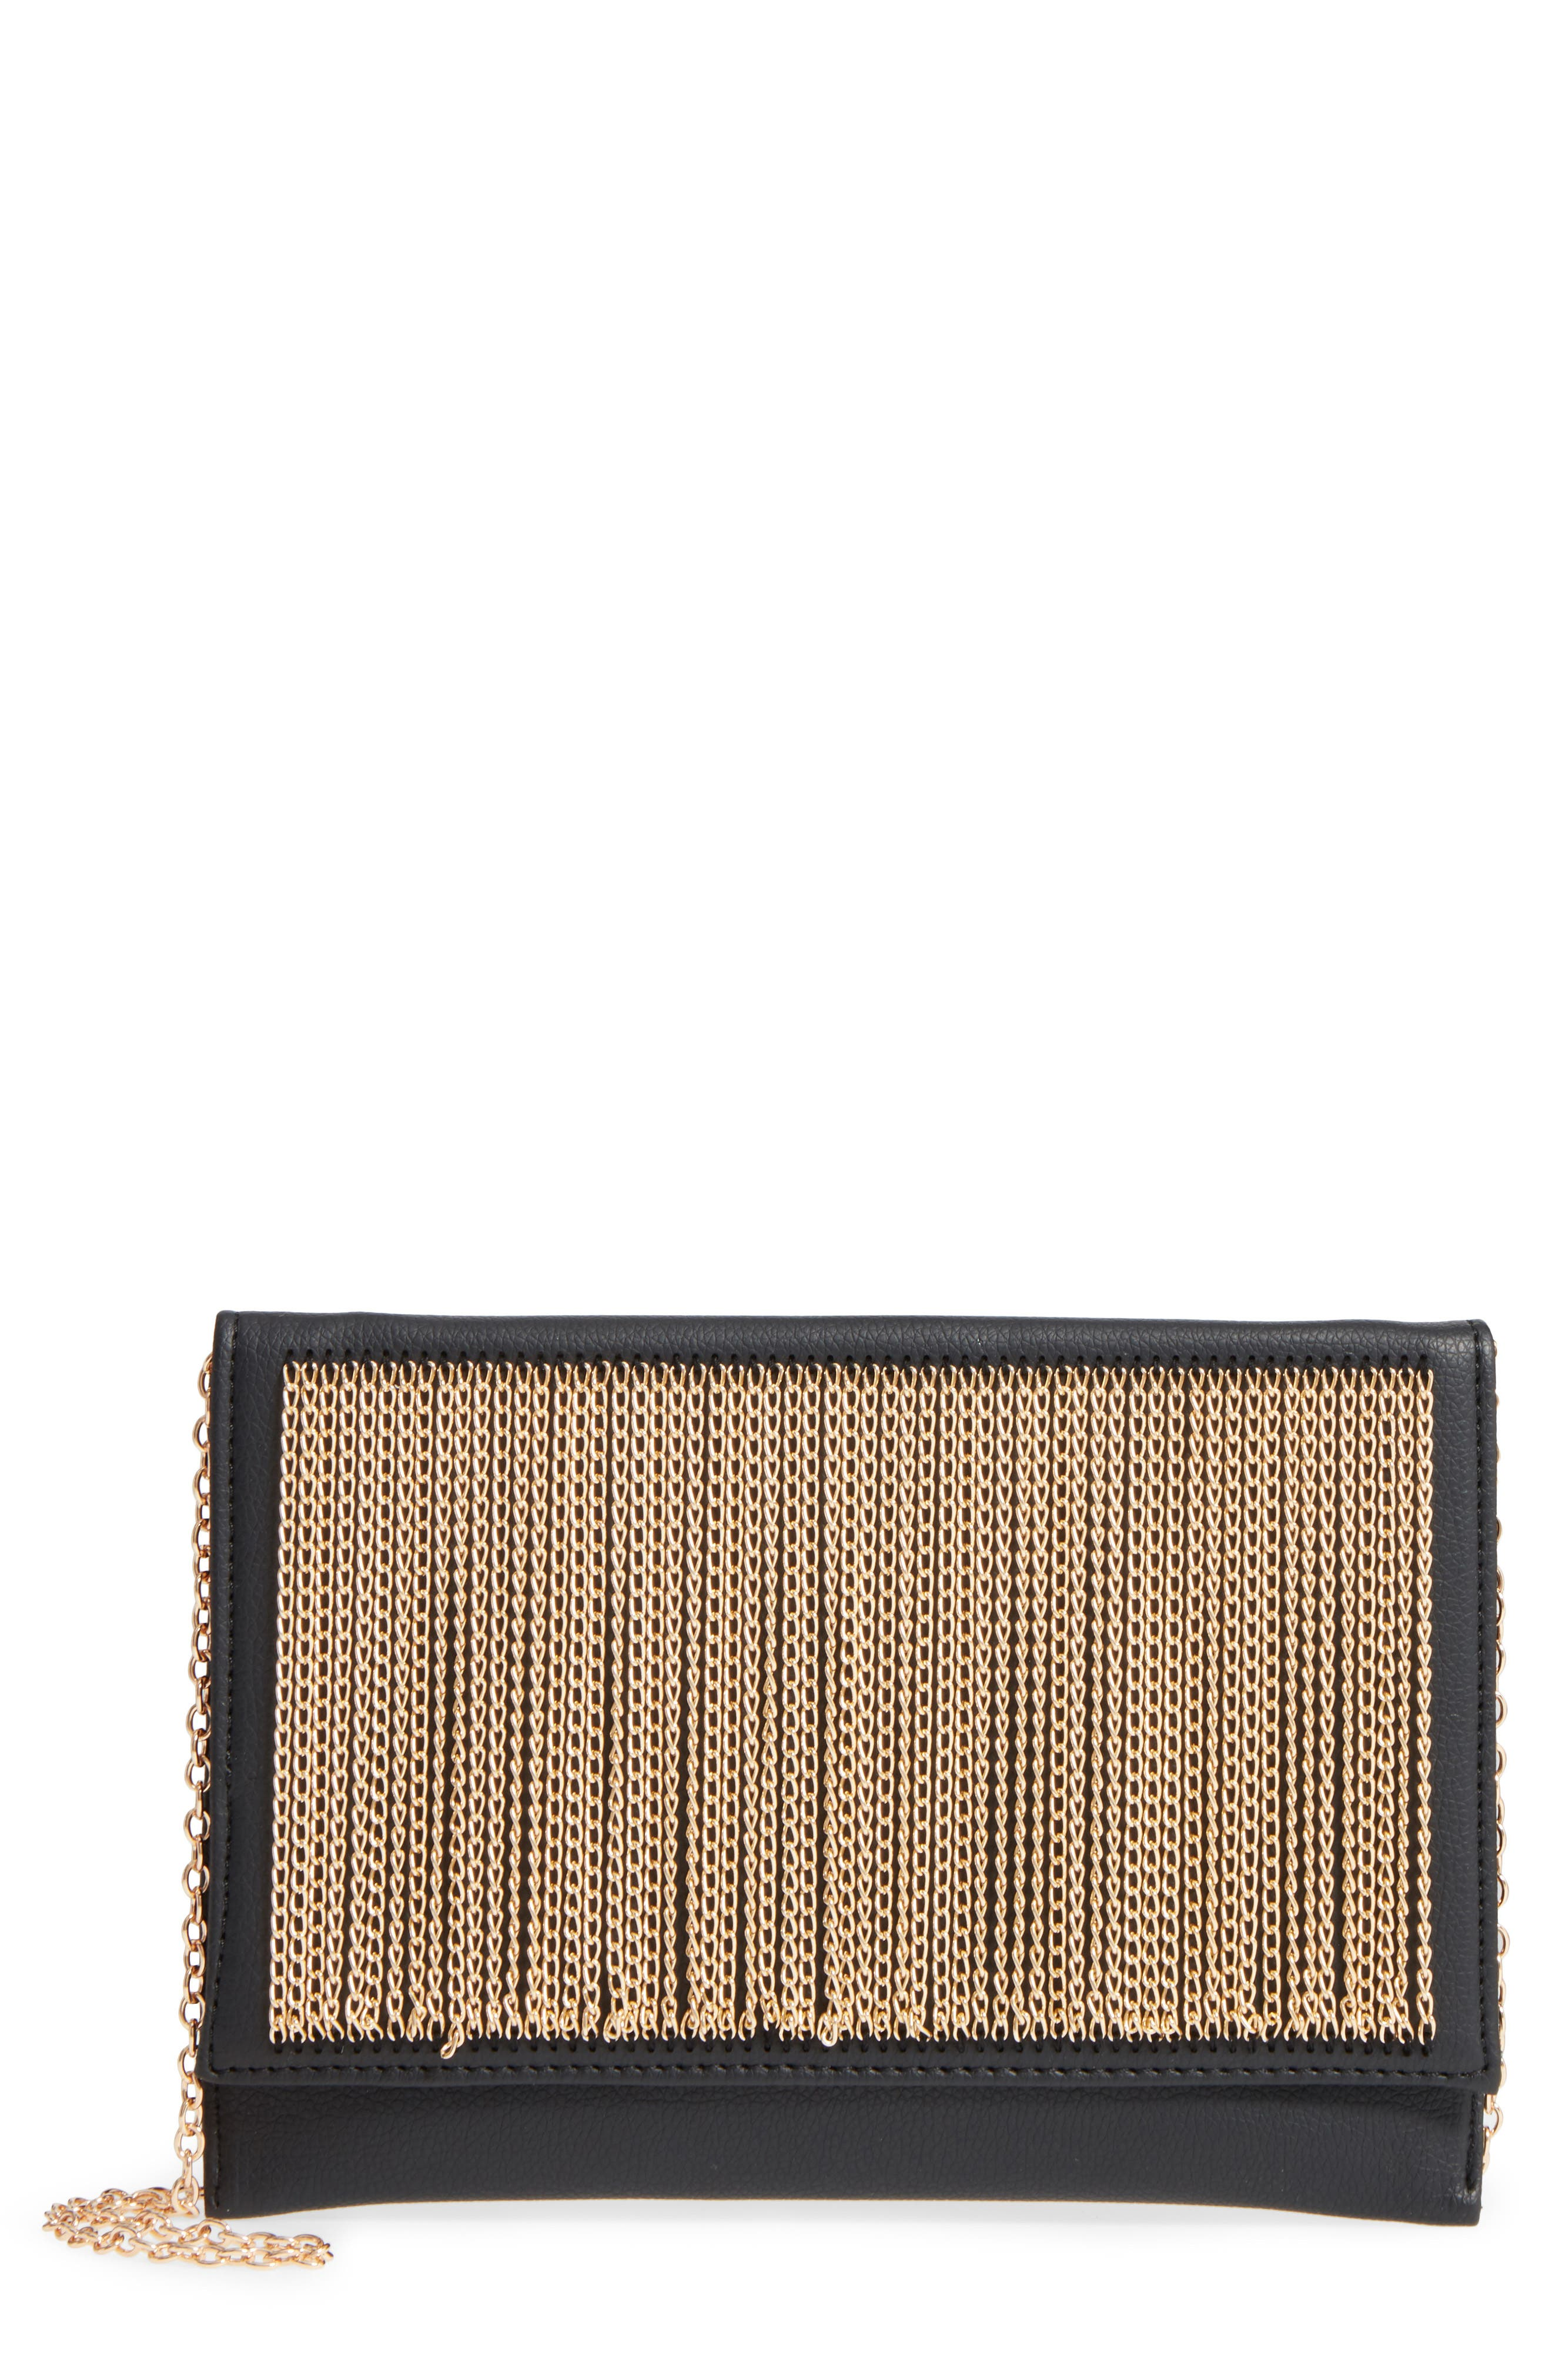 NATASHA COUTURE,                             Natasha Chain Clutch,                             Main thumbnail 1, color,                             001